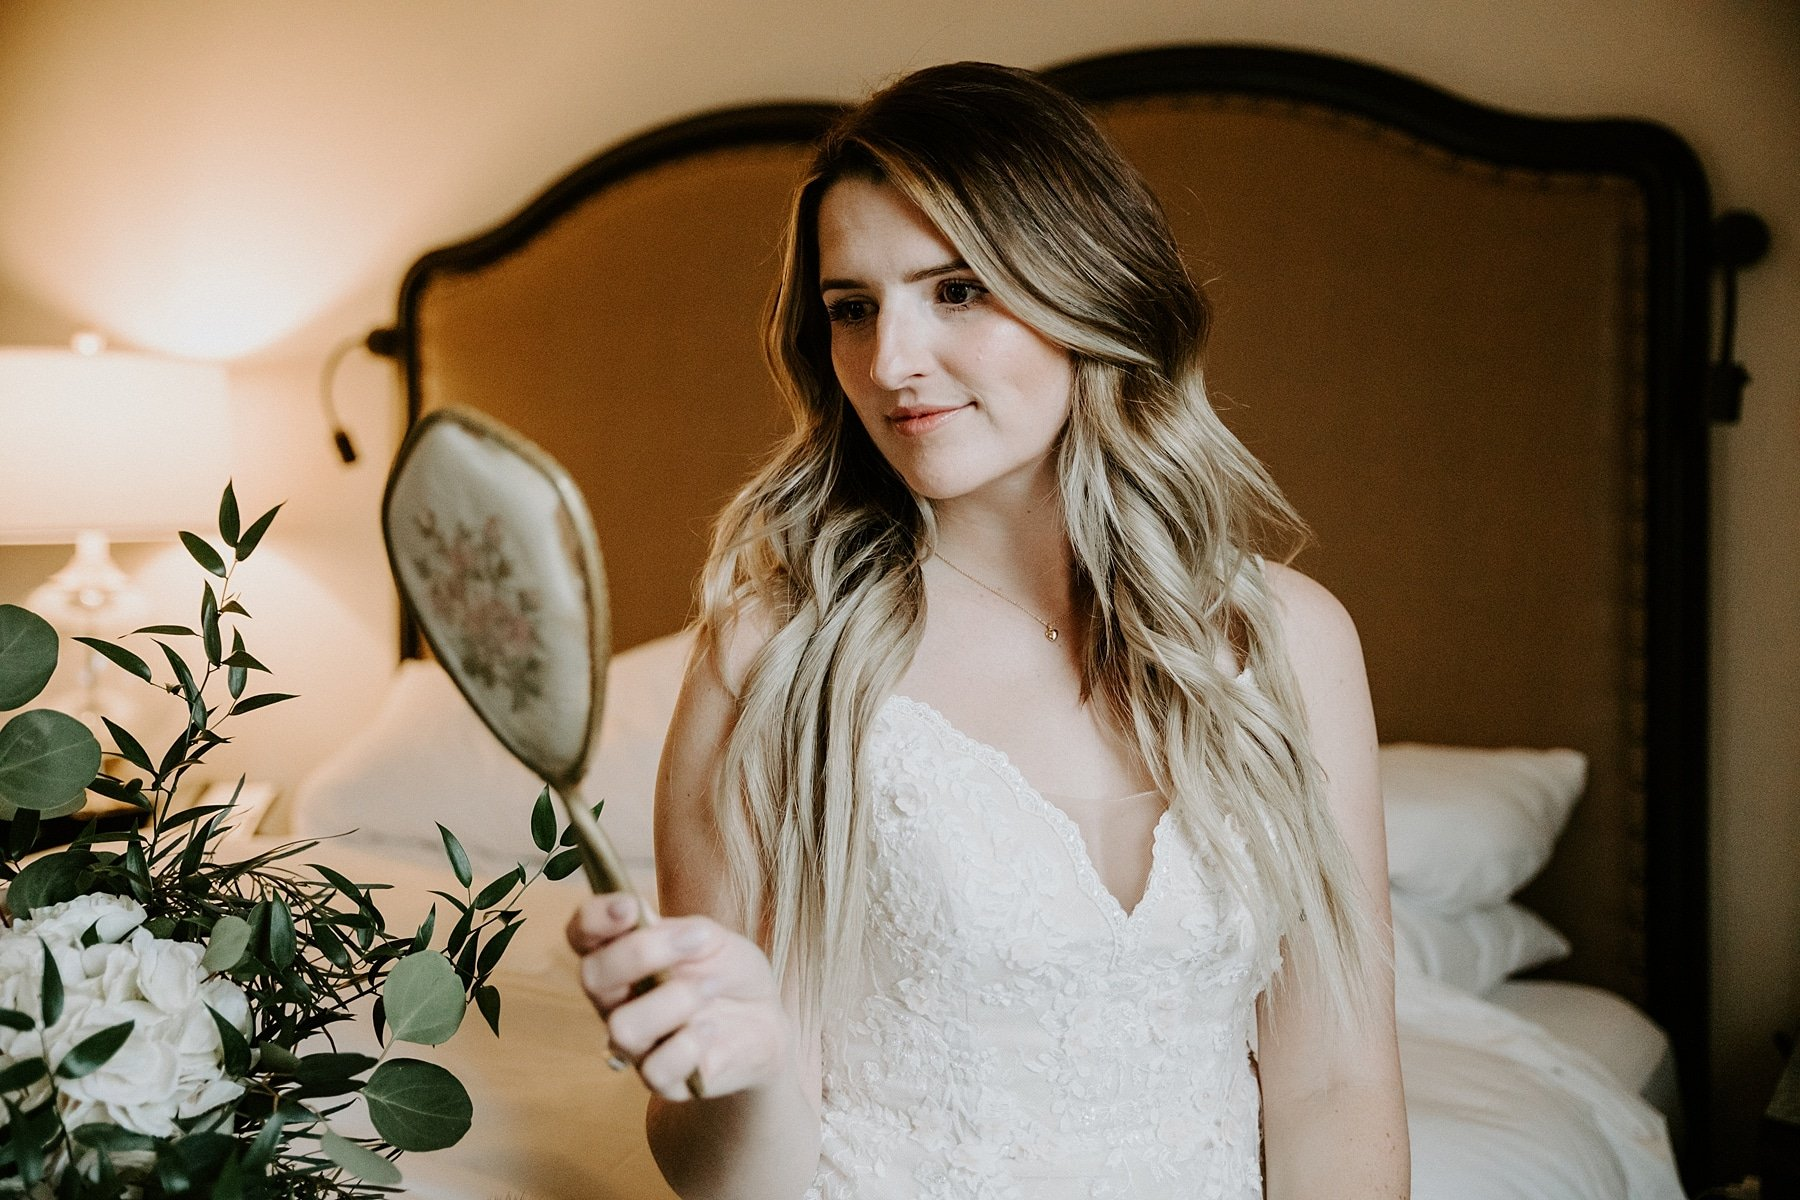 Bride holding vintage mirror up while getting ready for wedding